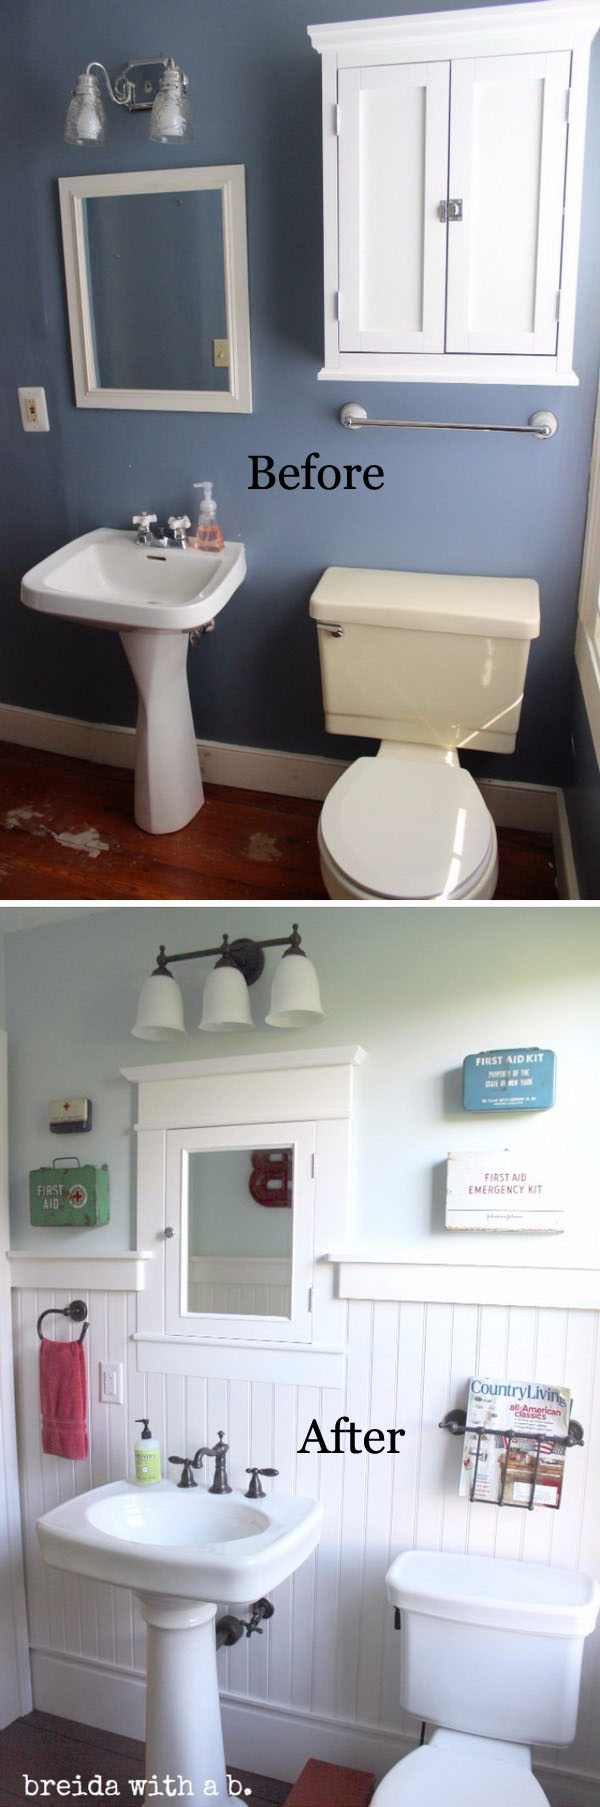 33-34-bathroom-remodel-before-and-after